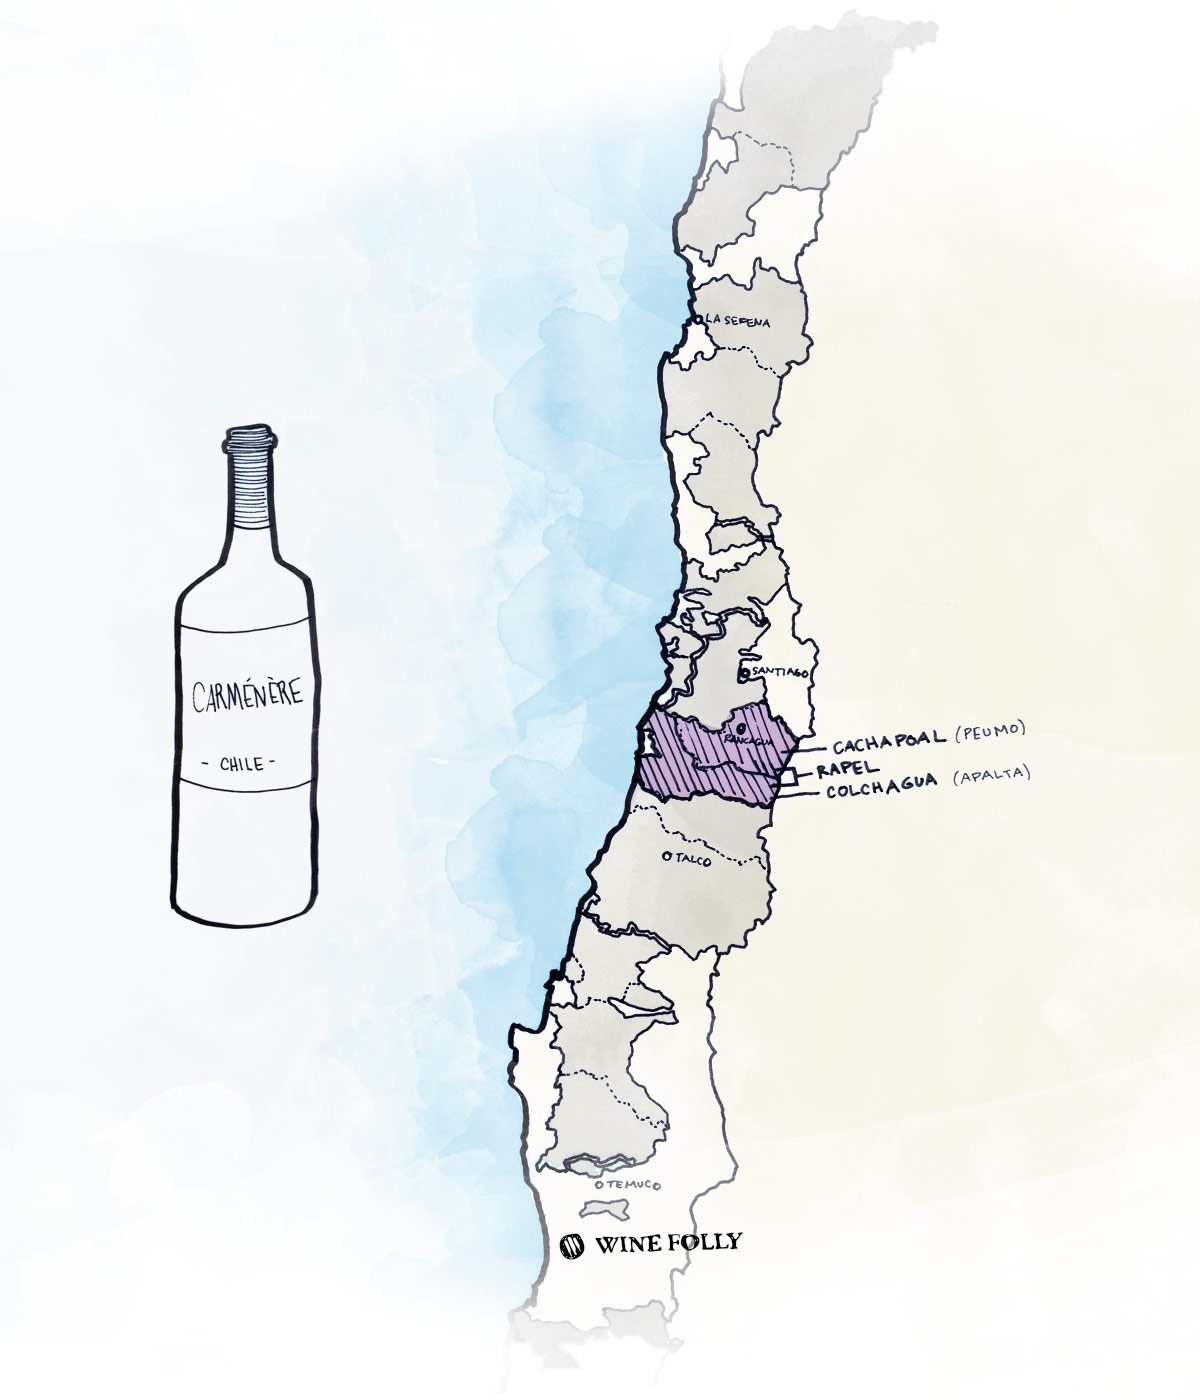 Best wine regions in Chile for Carmenere red wine